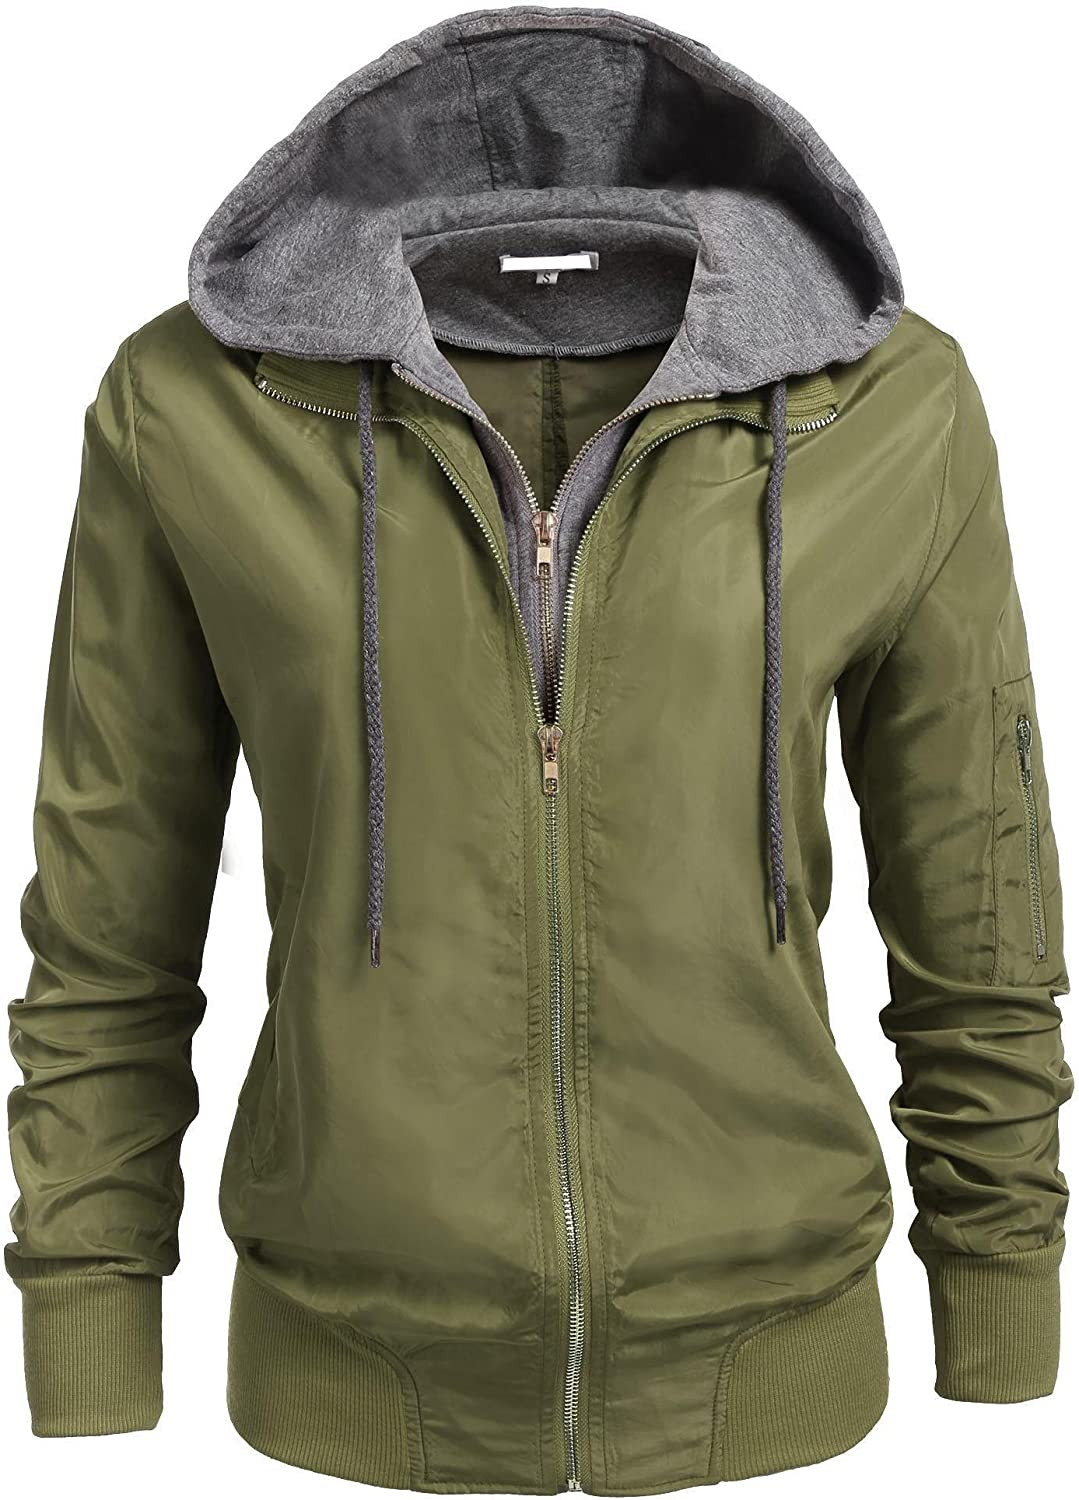 Zeagoo Womens Relaxed Fit Zip Up Hoodie Jacket SXXL